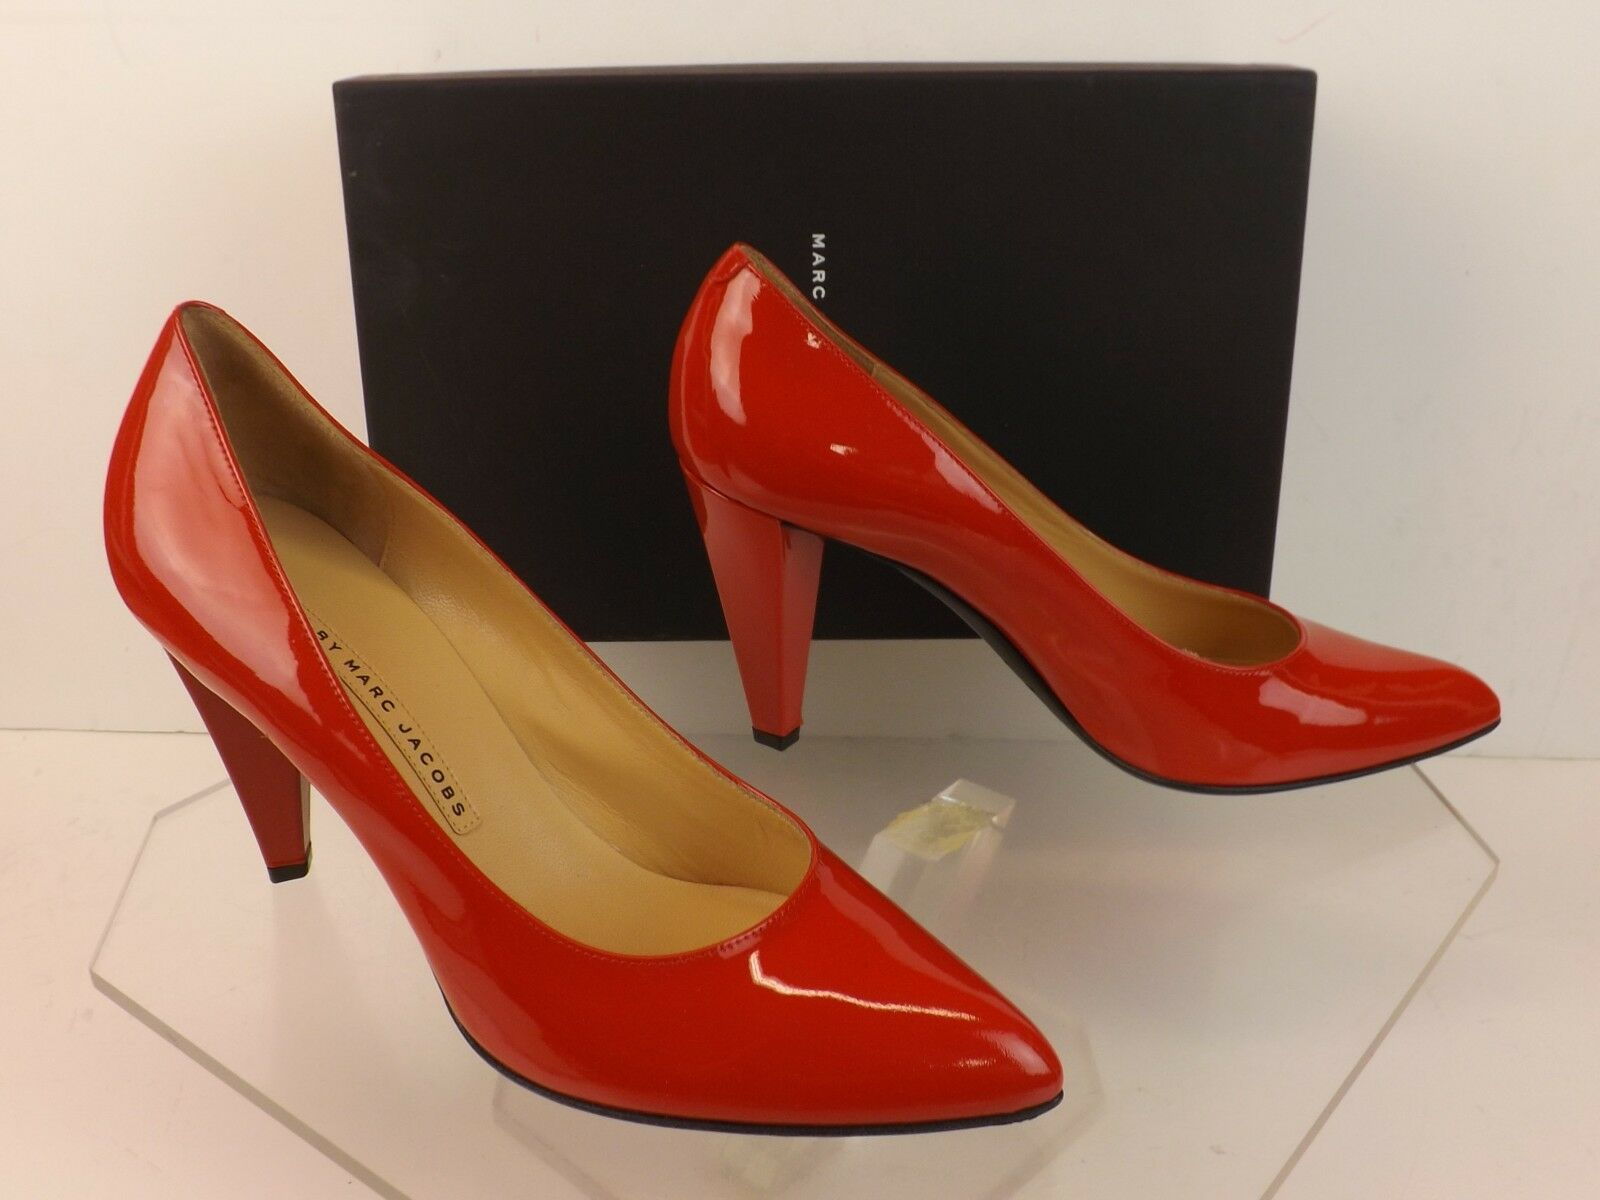 NIB MARC BY MARC JACOBS JACOBS JACOBS rot PATENT LEATHER POINTED TOE HIGH HEEL PUMPS 38 ITALY f9b848